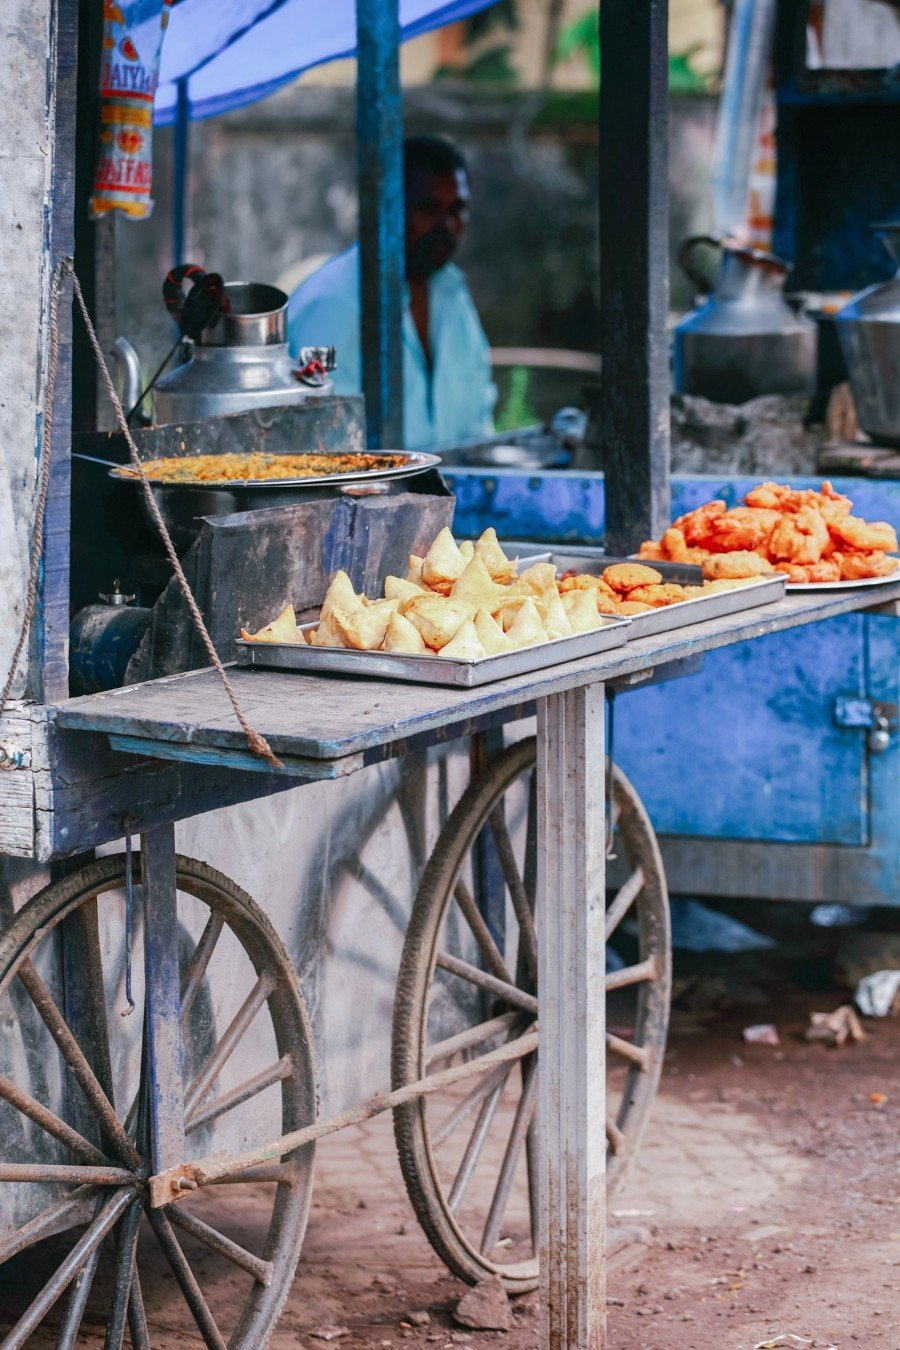 Street Foods in India being sold from a cart